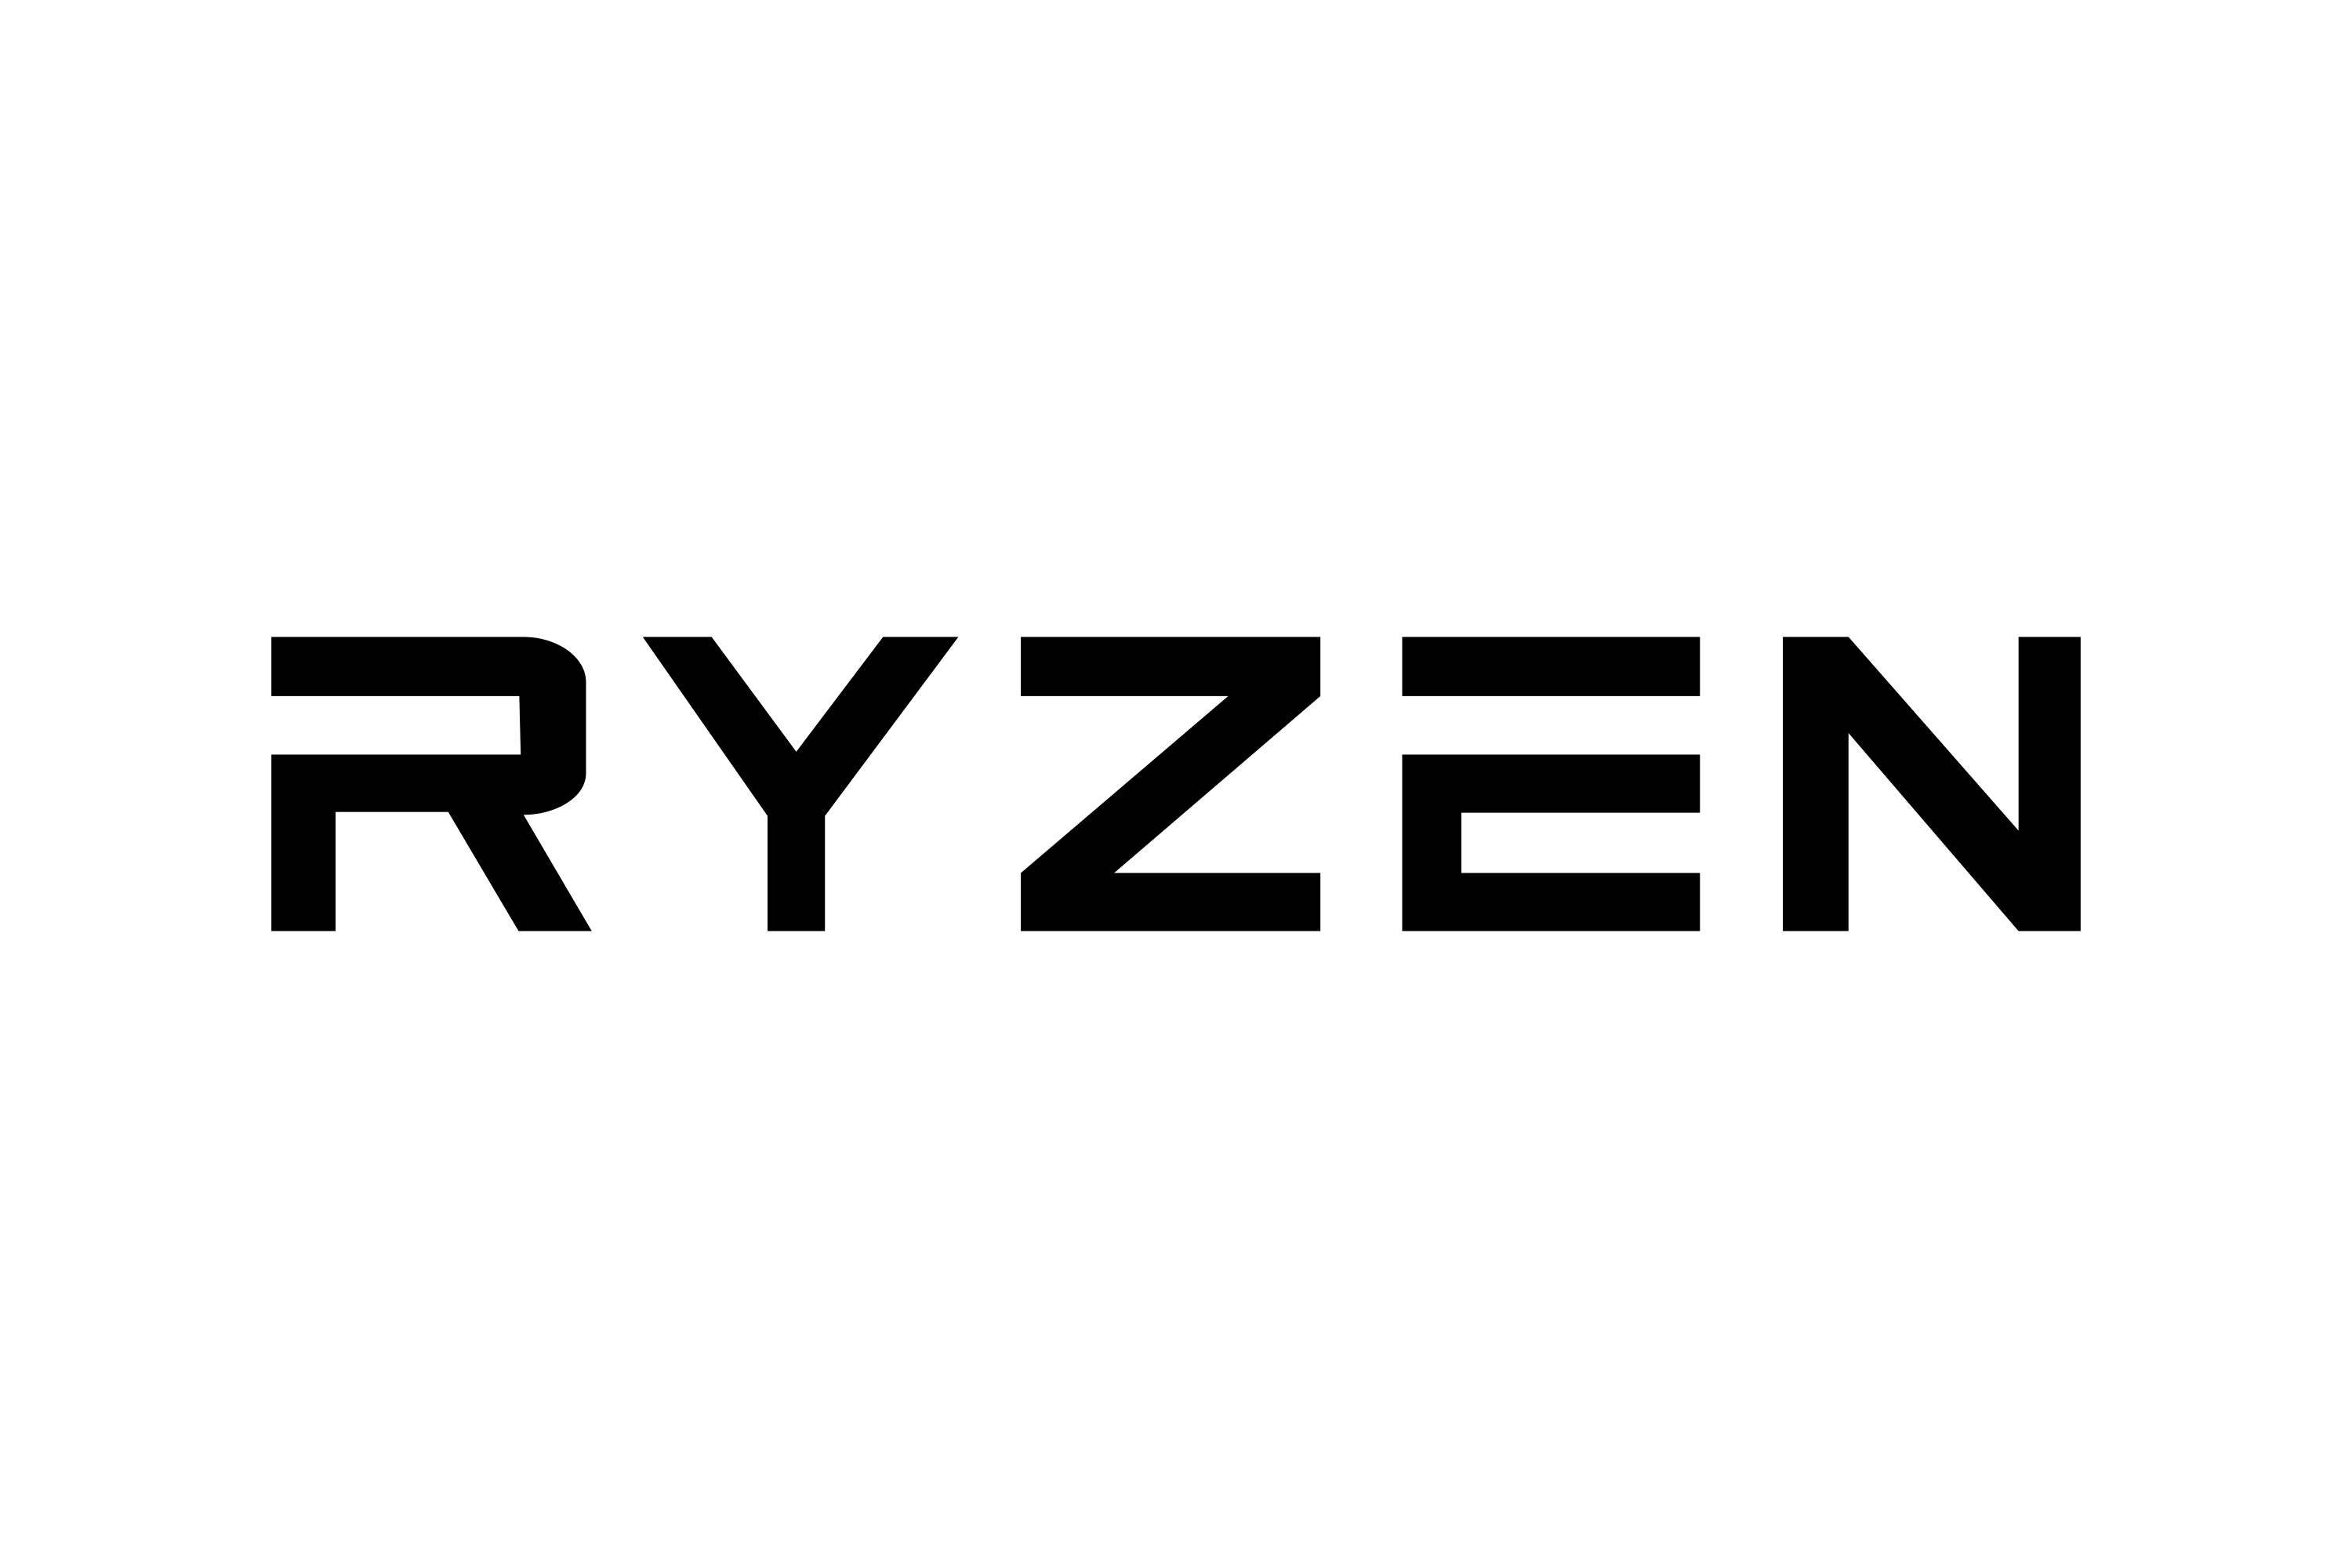 Download Amd Ryzen Logo In Svg Vector Or Png File Format Logo Wine